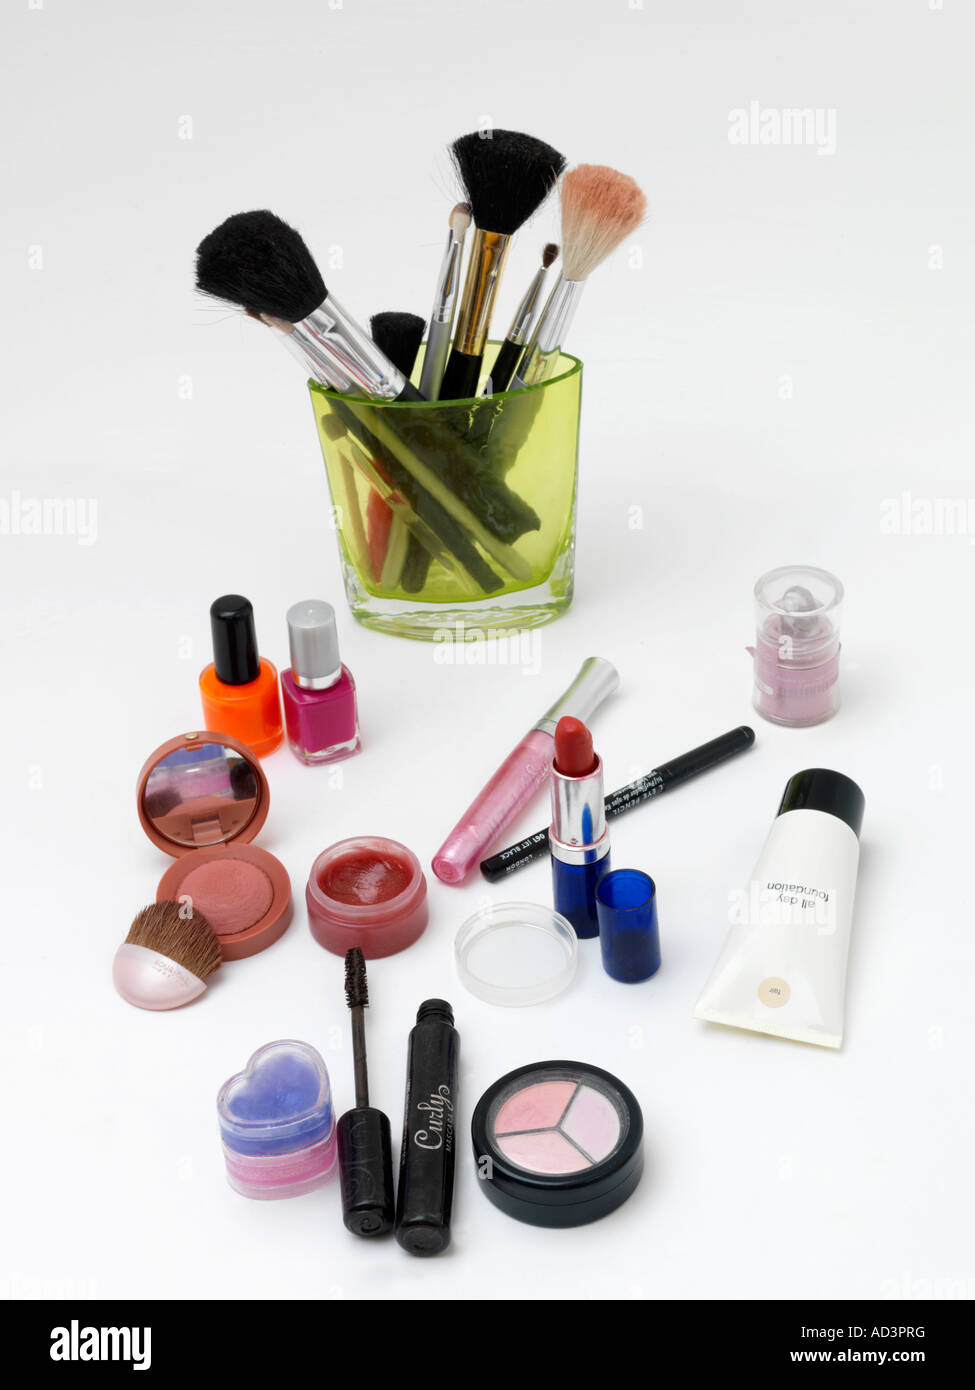 Collage of Common Make up Items including Foundation, Eye Shadow, Mascara, Blush, Lip Gloss - Stock Image